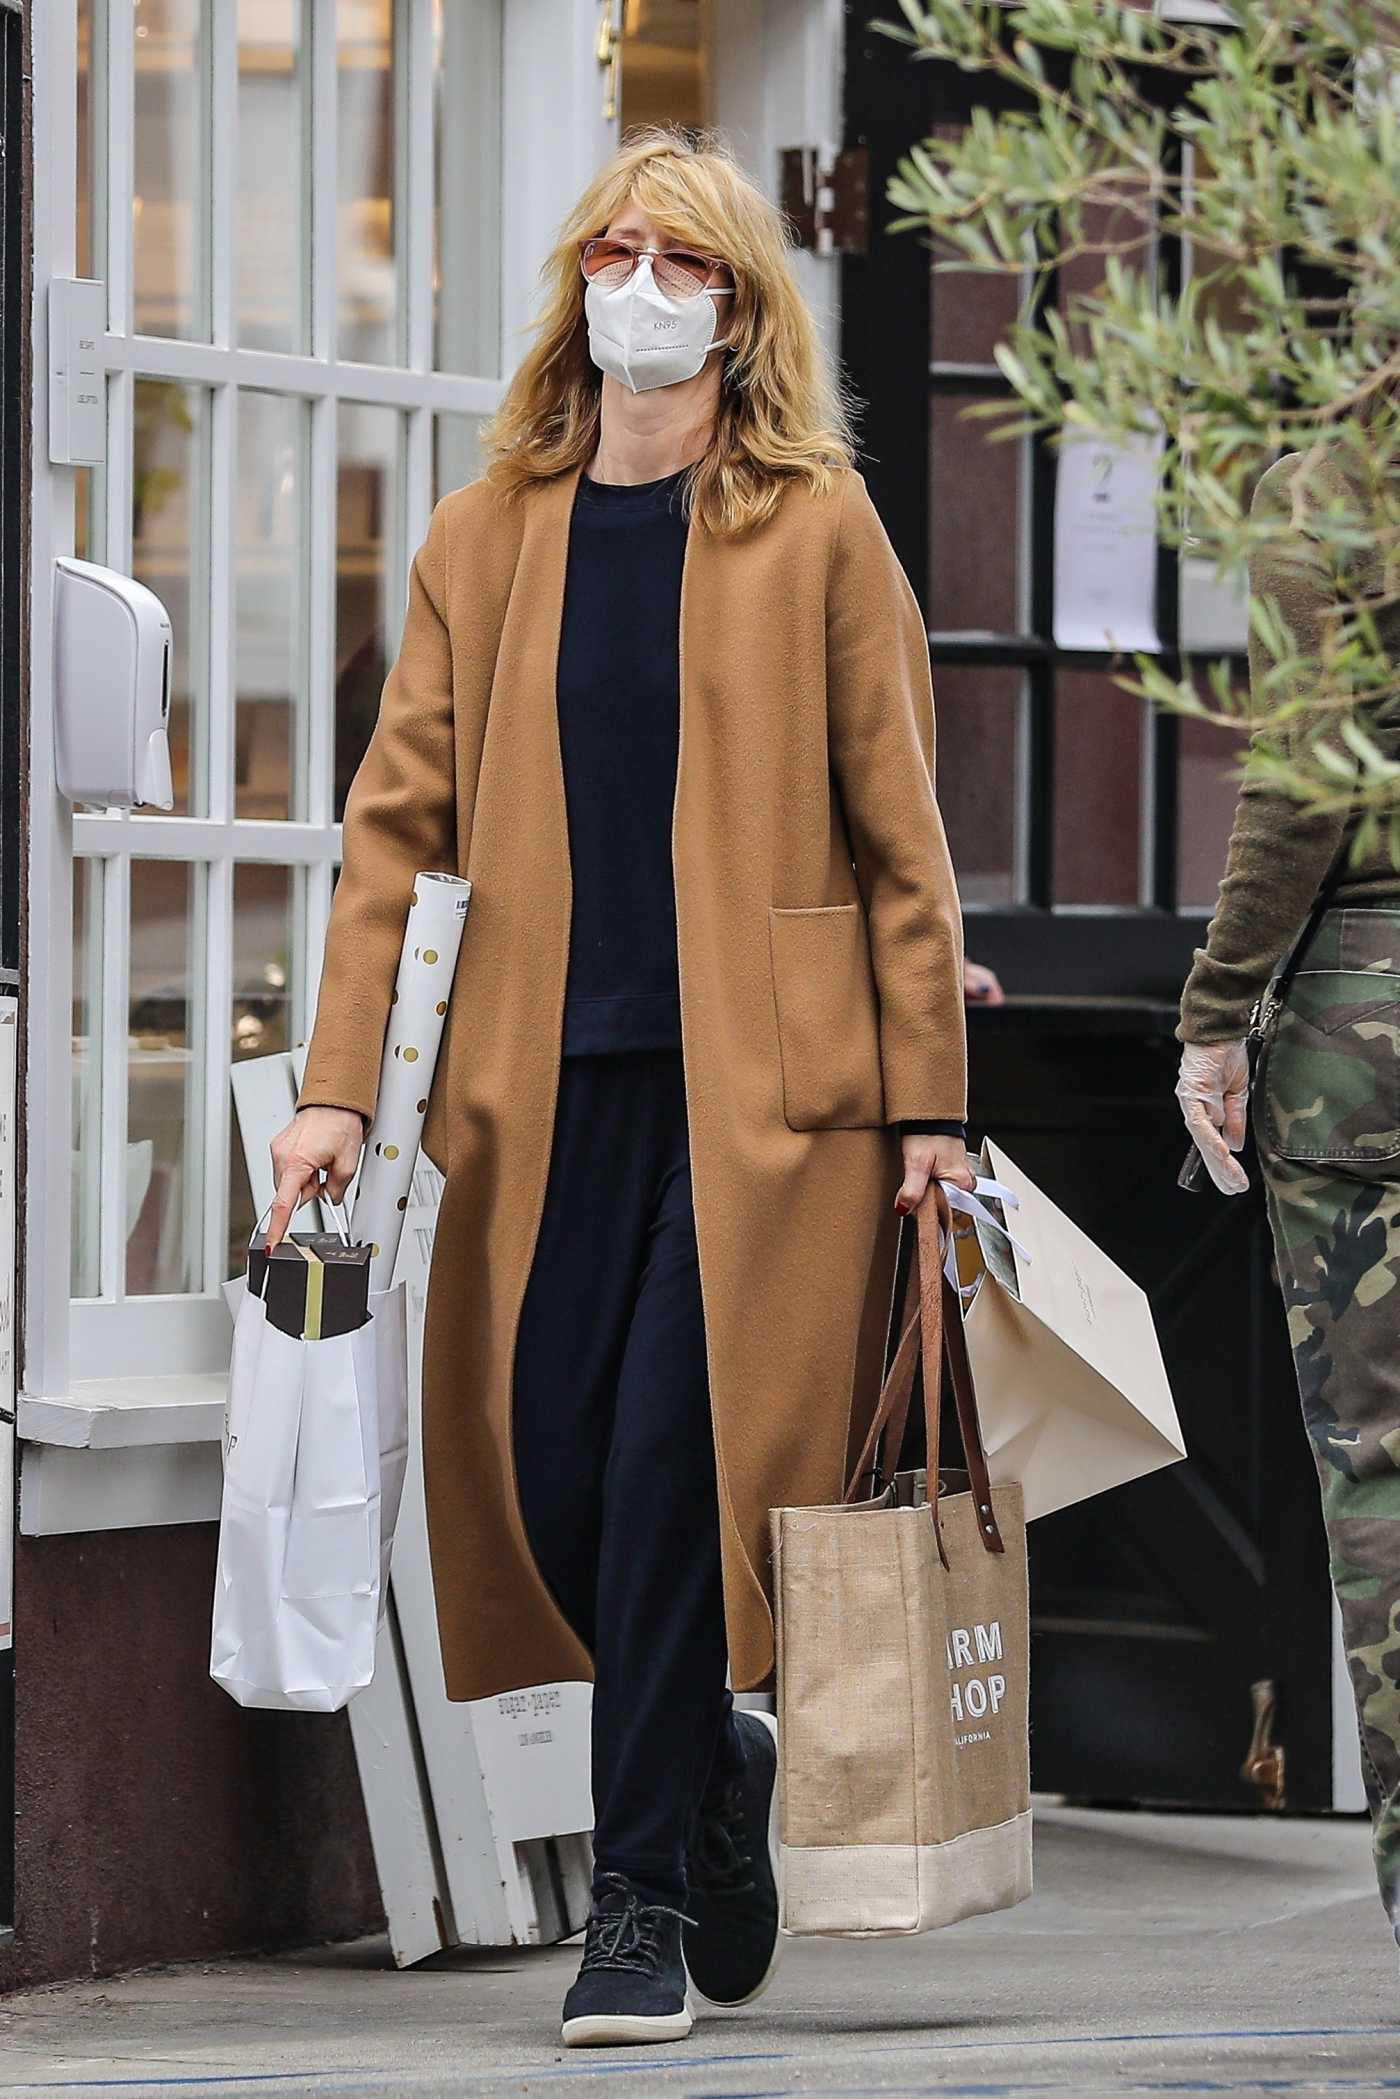 Laura Dern in a Tan Coat Goes Shopping on Christmas Eve at the Country Mart in Brentwood 12/24/2020